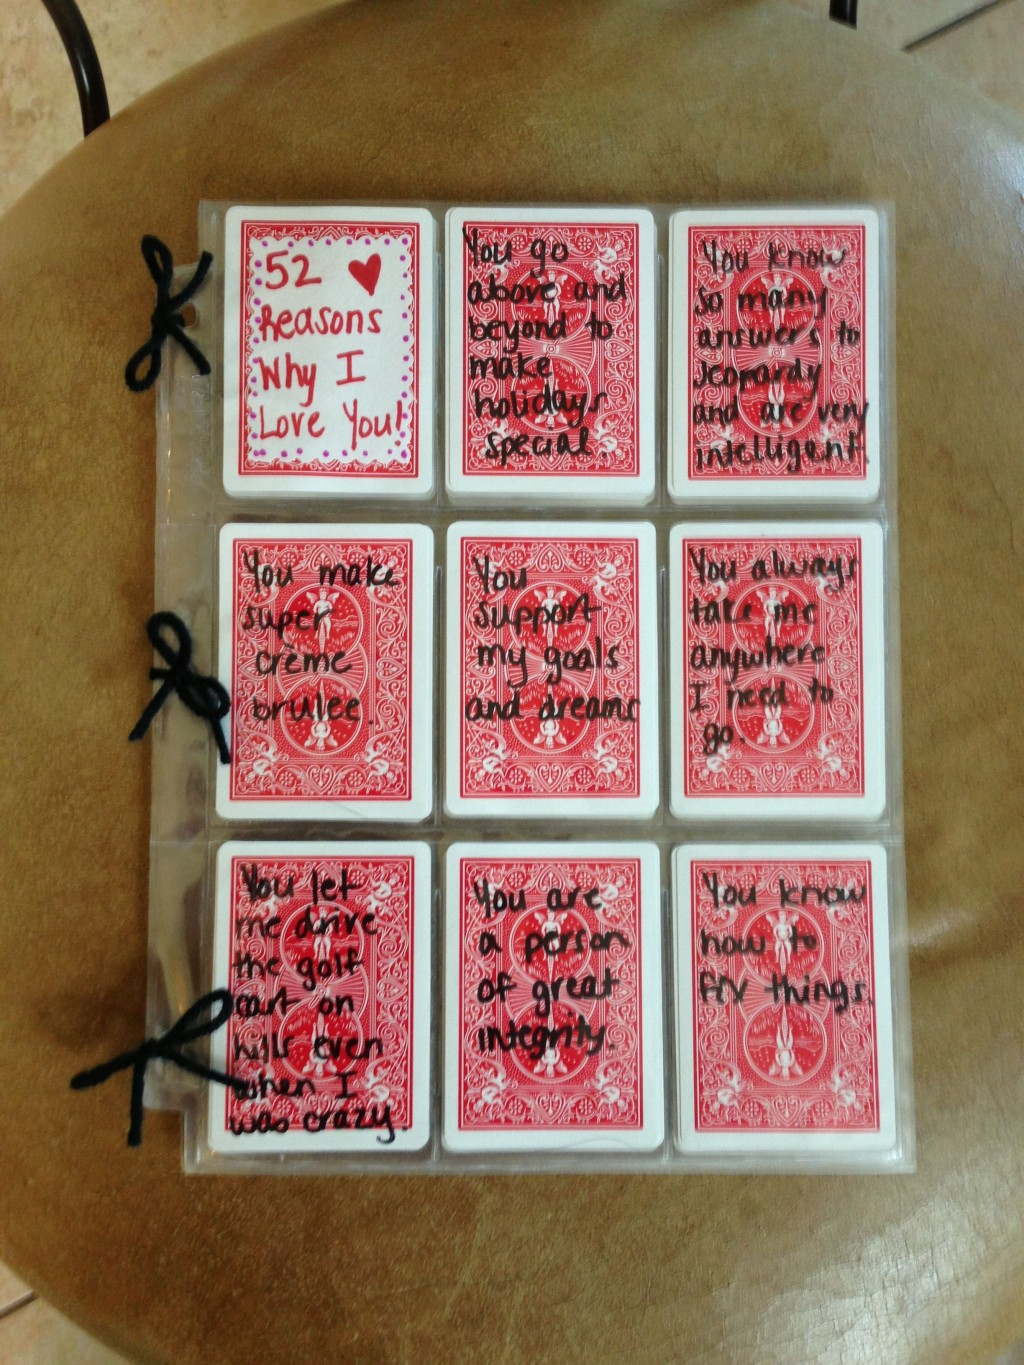 002 Astounding 52 Reason Why I Love You Deck Of Card Free Template Image Large